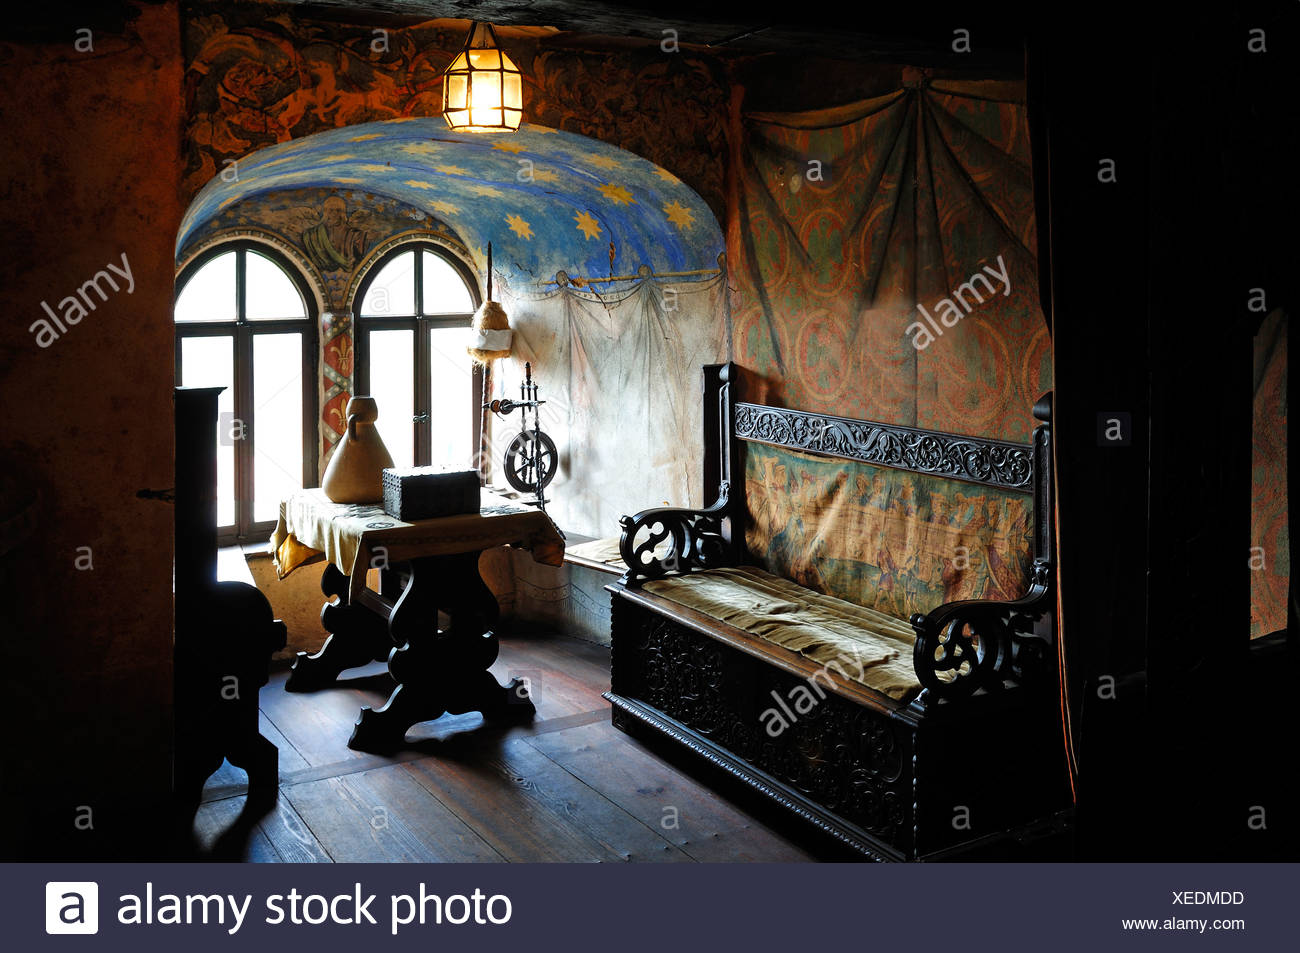 Furnished bower at the Burg Goessweinstein castle, furniture from the 15th century, Goessweinstein, Upper Franconia, Bavaria - Stock Image